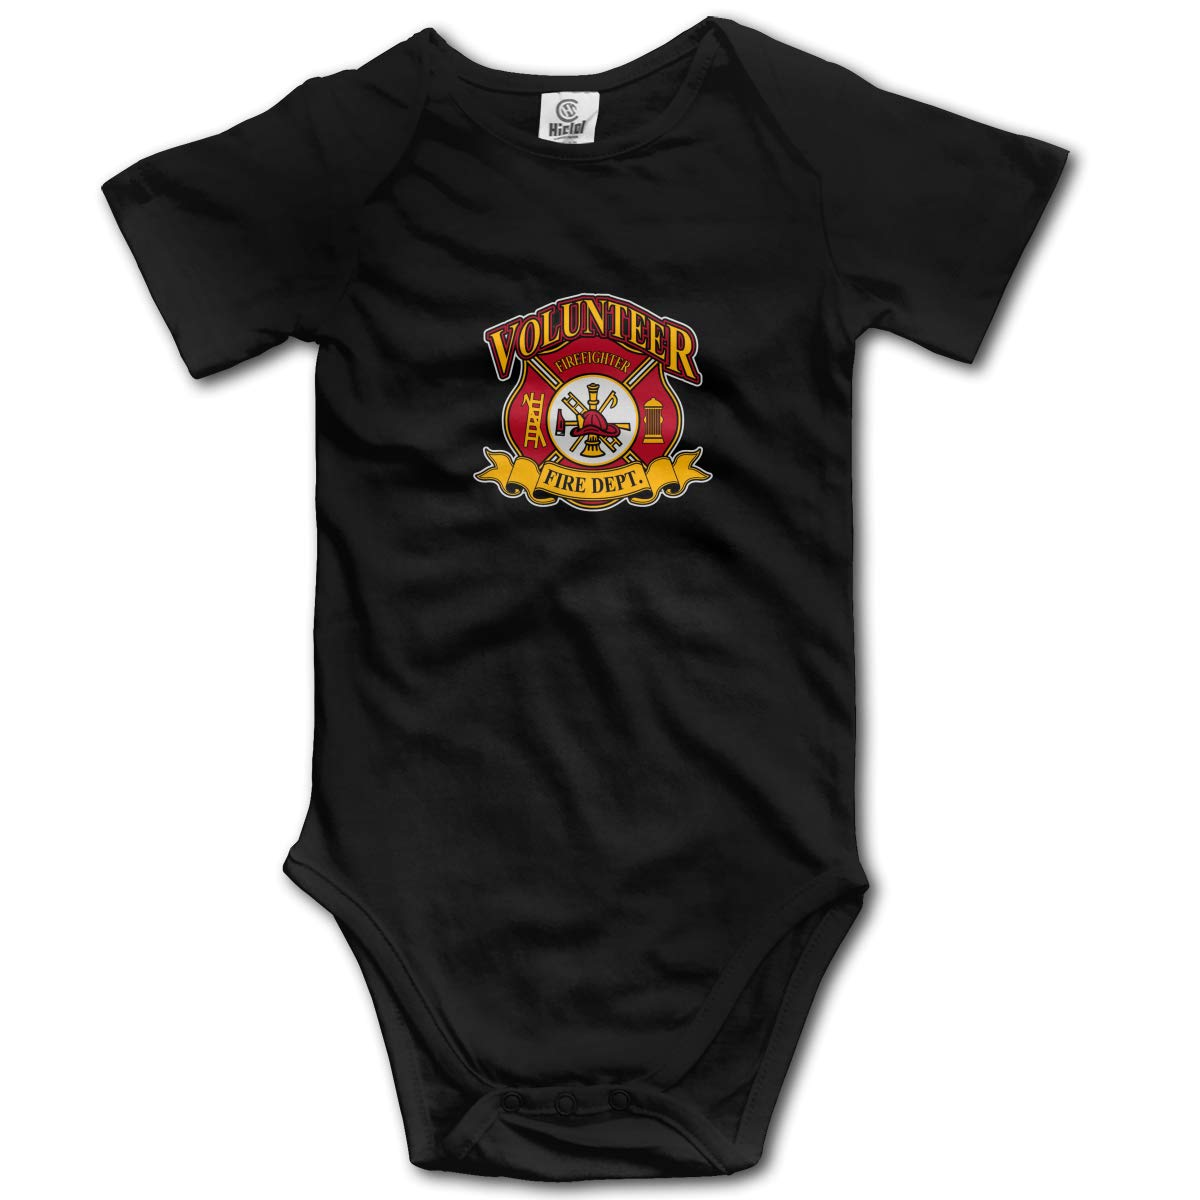 Coollifea Firefighter Volunteer Baby Romper 0-18 Months Newborn Baby Girls Boys Layette Rompers Black